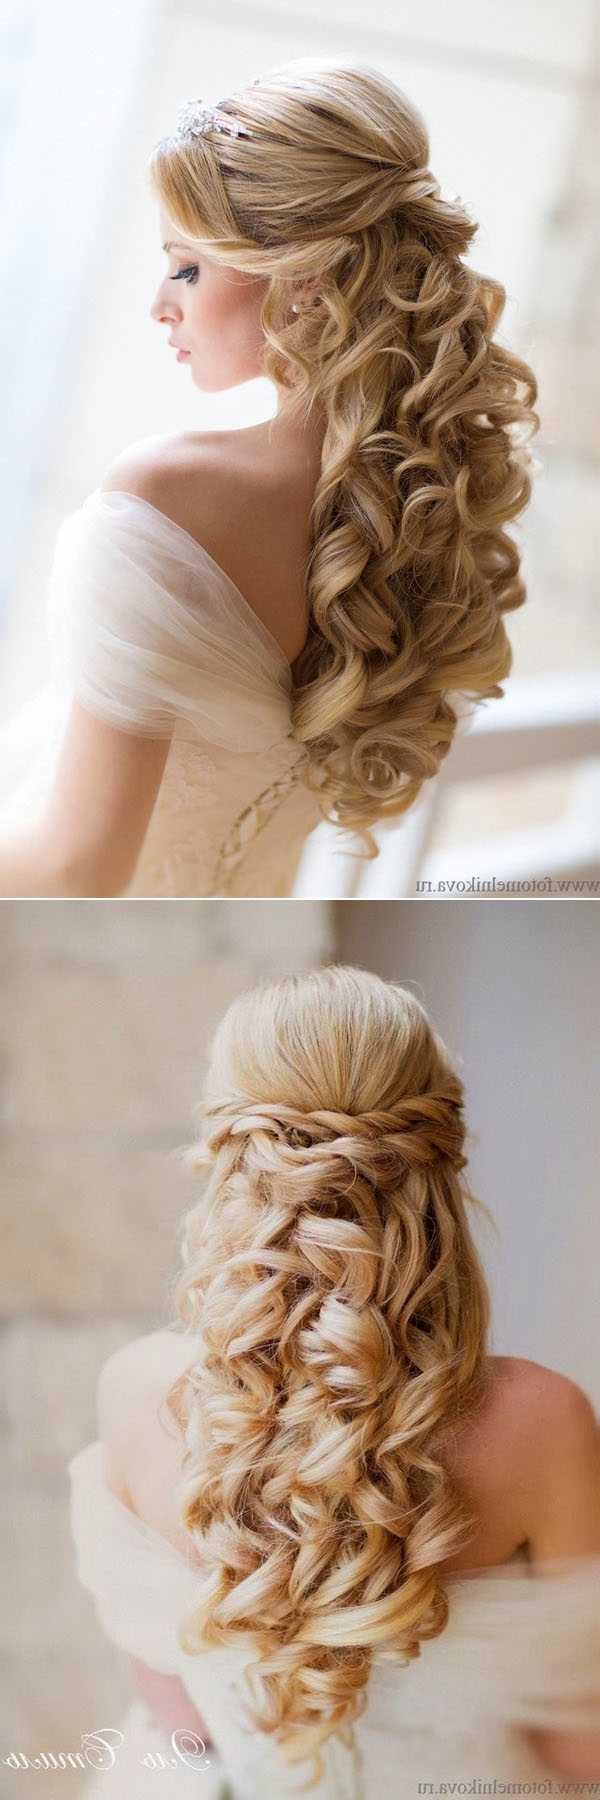 Most Recently Released Golden Half Up Half Down Curls Bridal Hairstyles Within Trubridal Wedding Blog (View 13 of 20)